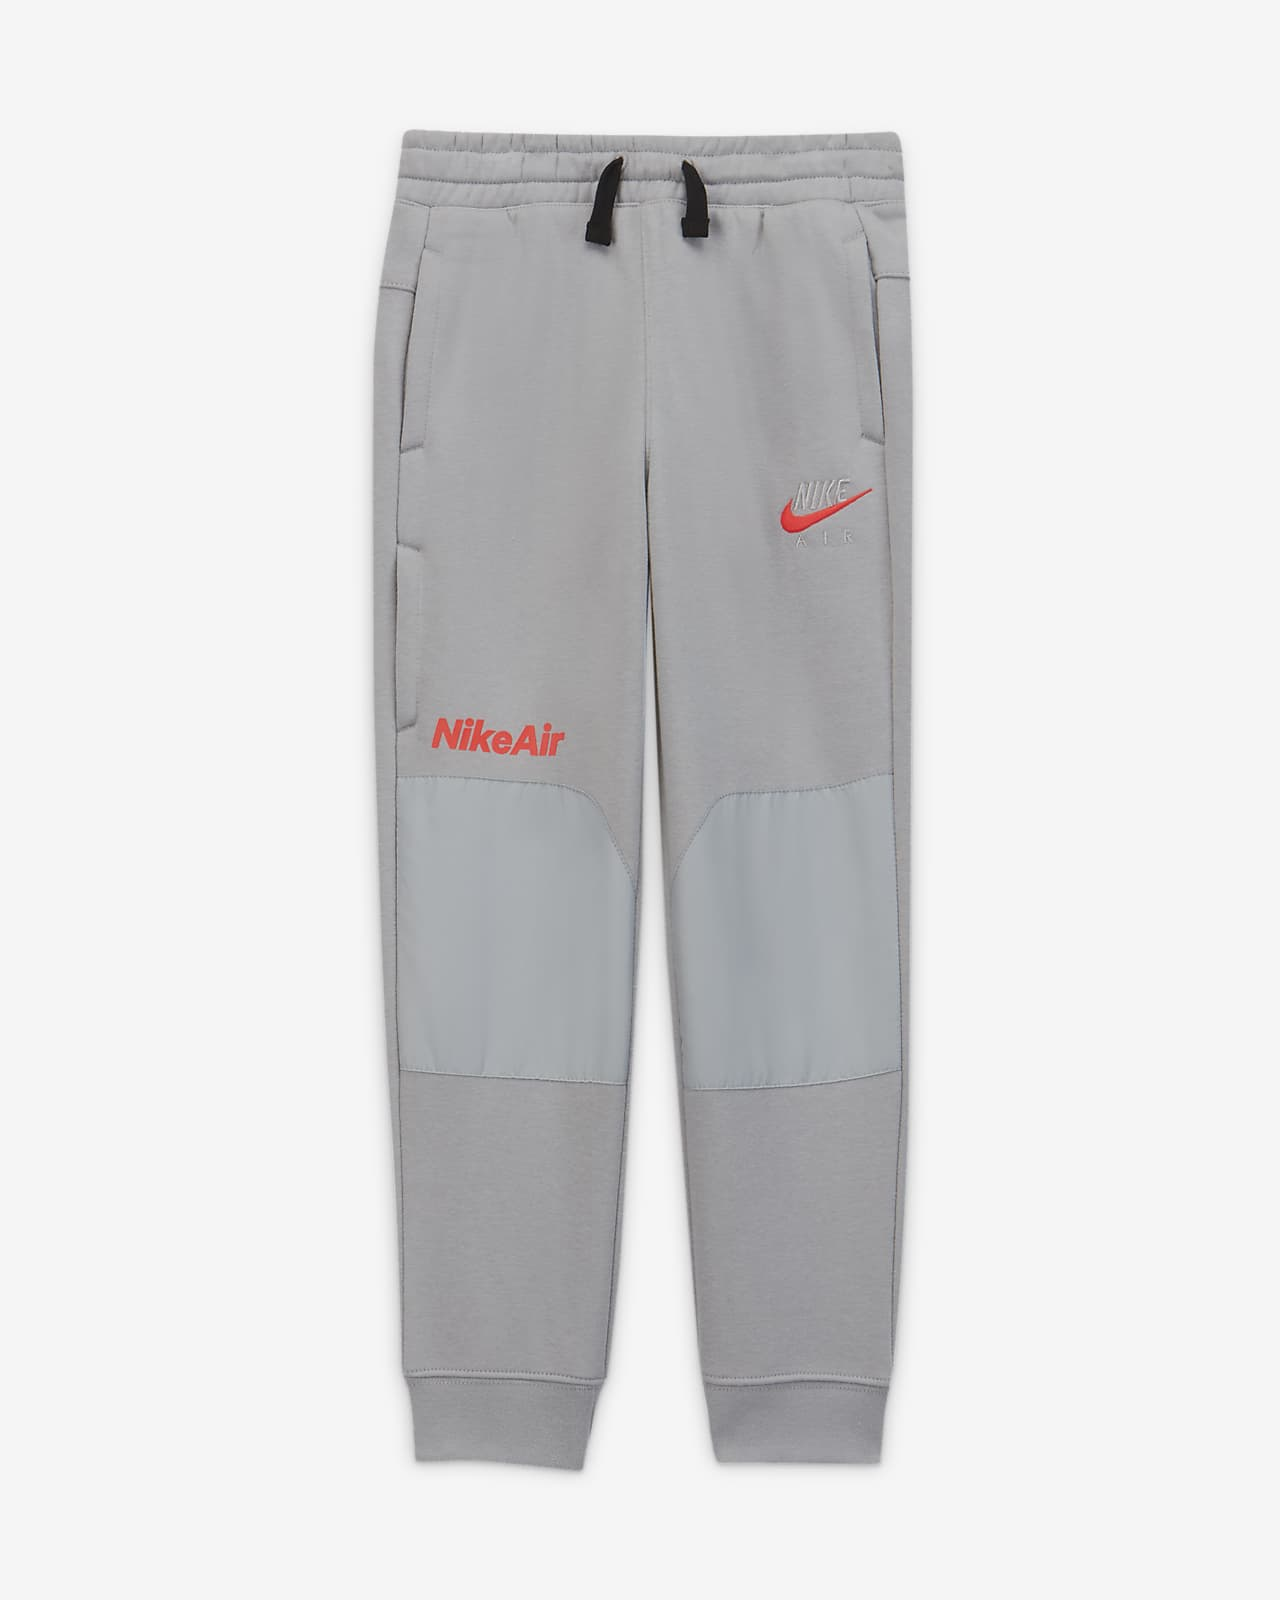 Nike Air Little Kids' Joggers